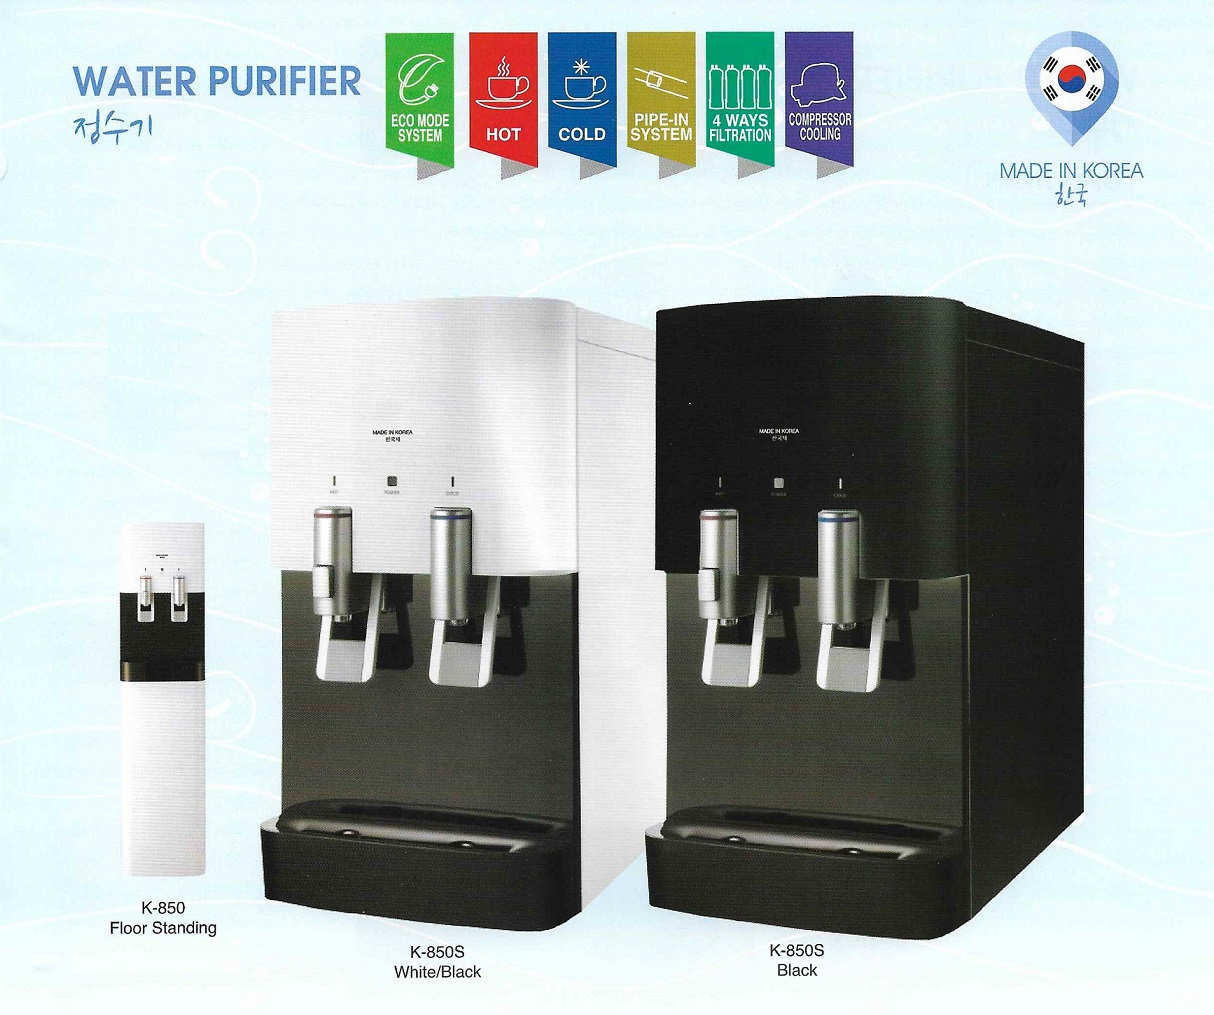 FW1005 KOREA FA-850S Energy Saving Hot & Cold Counter Top Water Filter Dispenser MELAKA